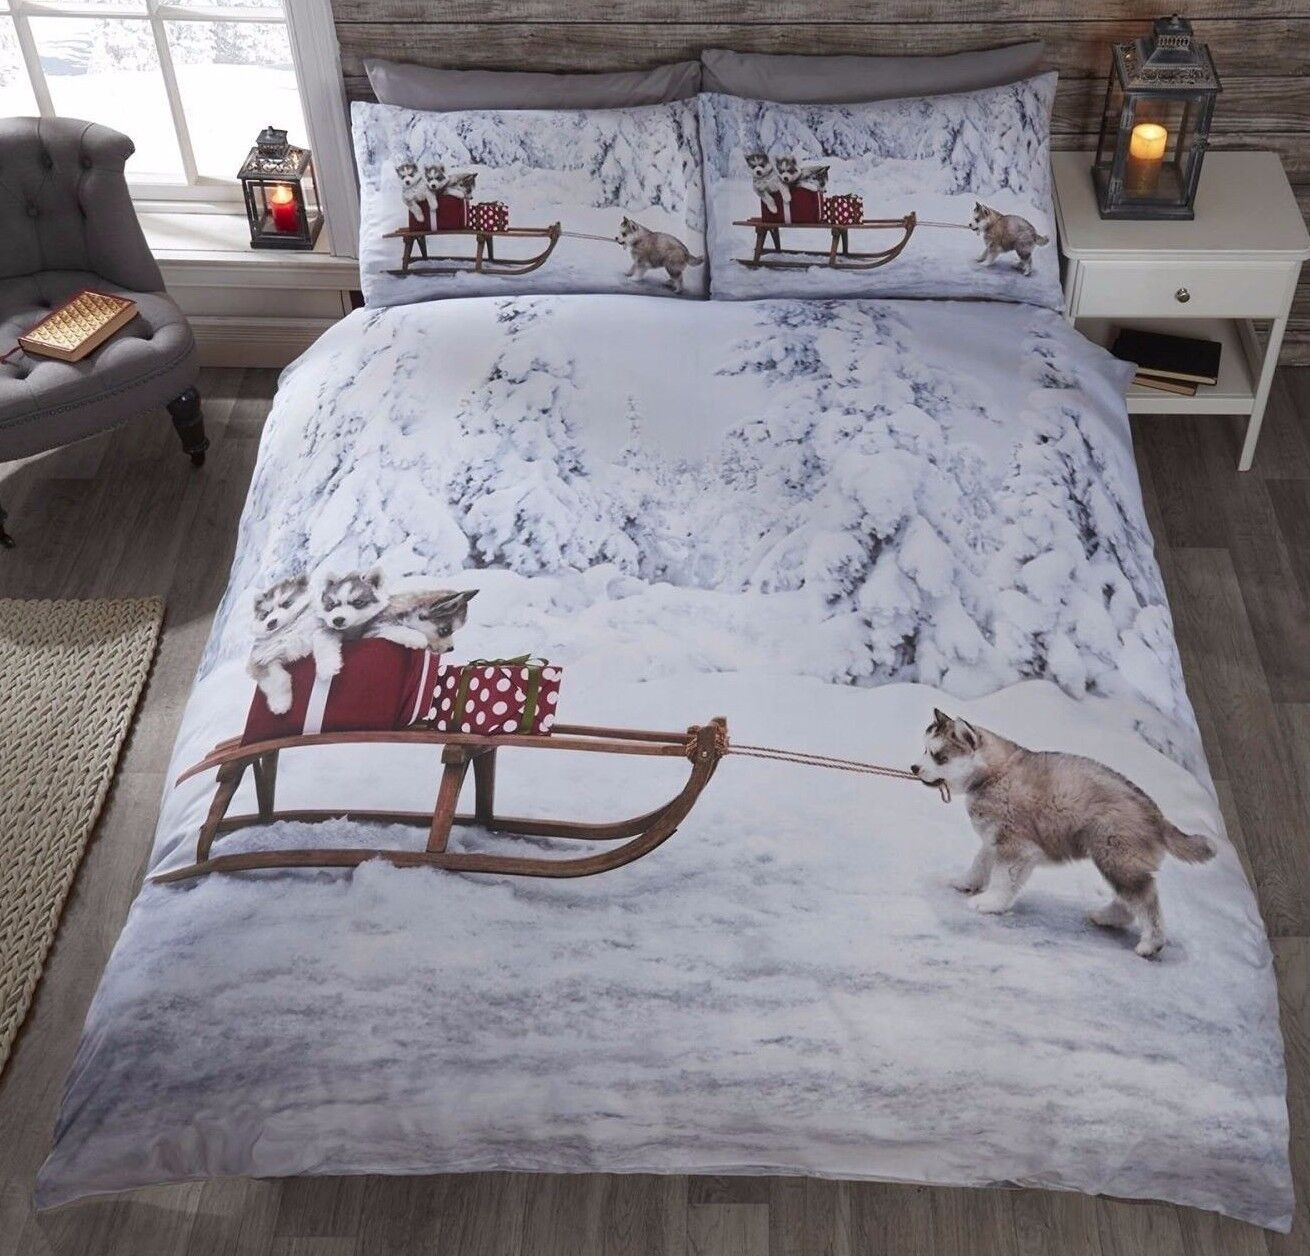 HUSKIES PUPS CHRISTMAS QUILT DUVET COVER SETS,BEDDING SETS,BED LINEN.